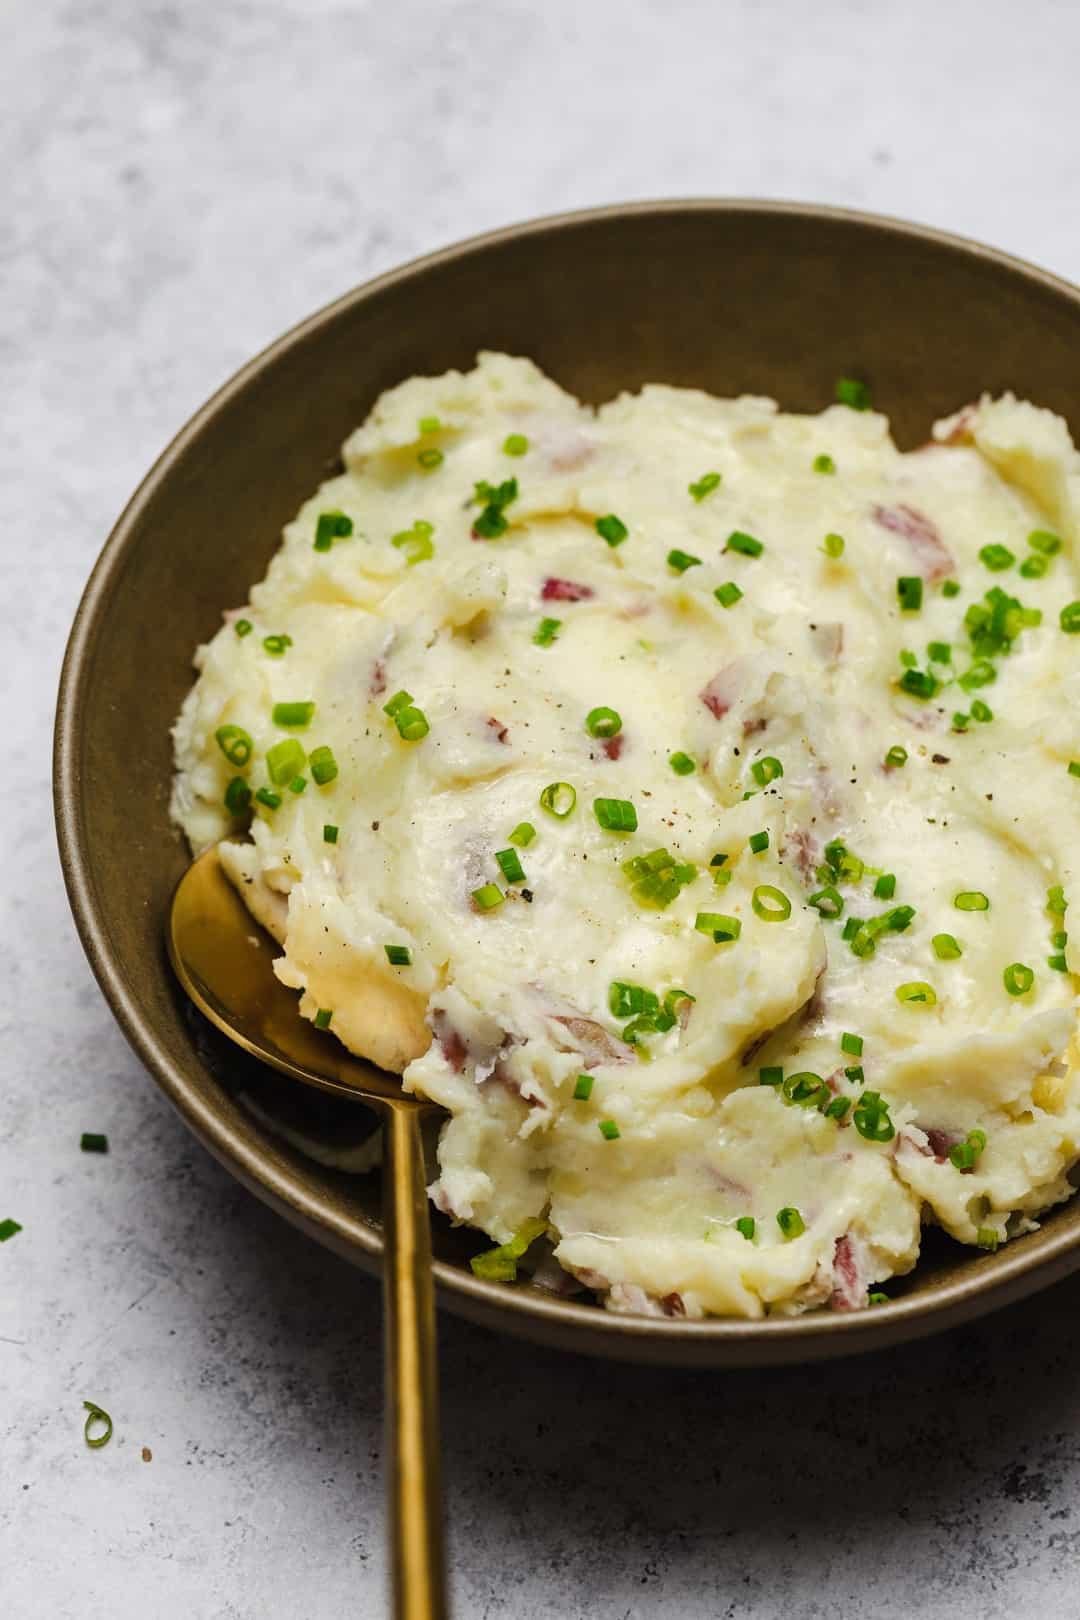 Close up of mashed potatoes in a gold bowl